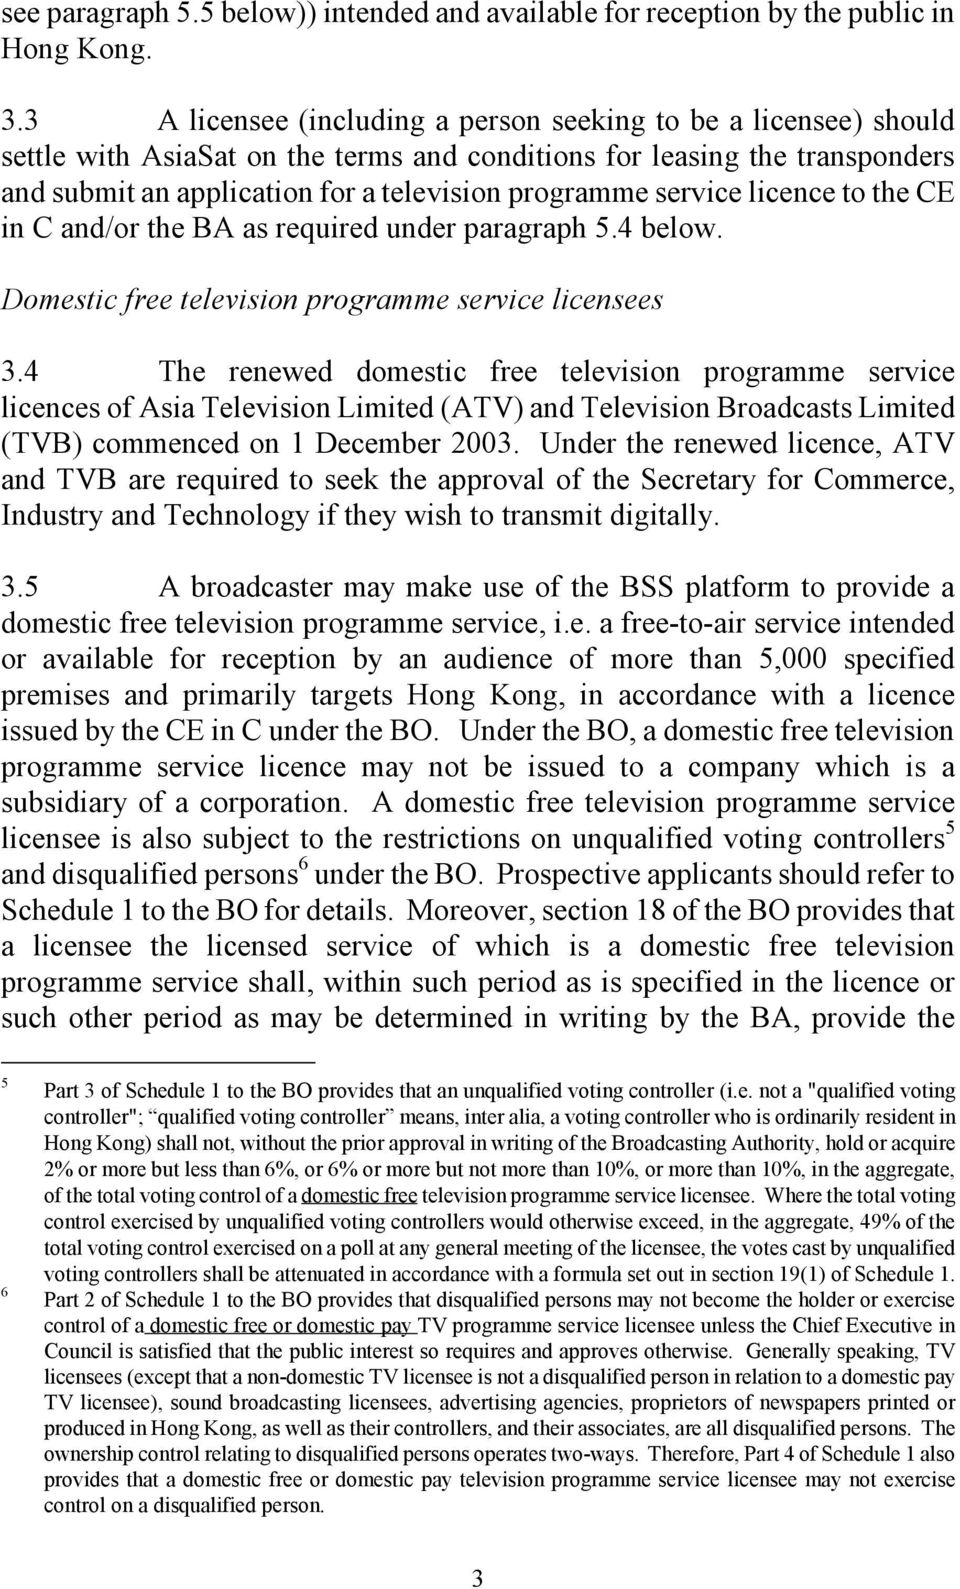 service licence to the CE in C and/or the BA as required under paragraph 5.4 below. Domestic free television programme service licensees 3.